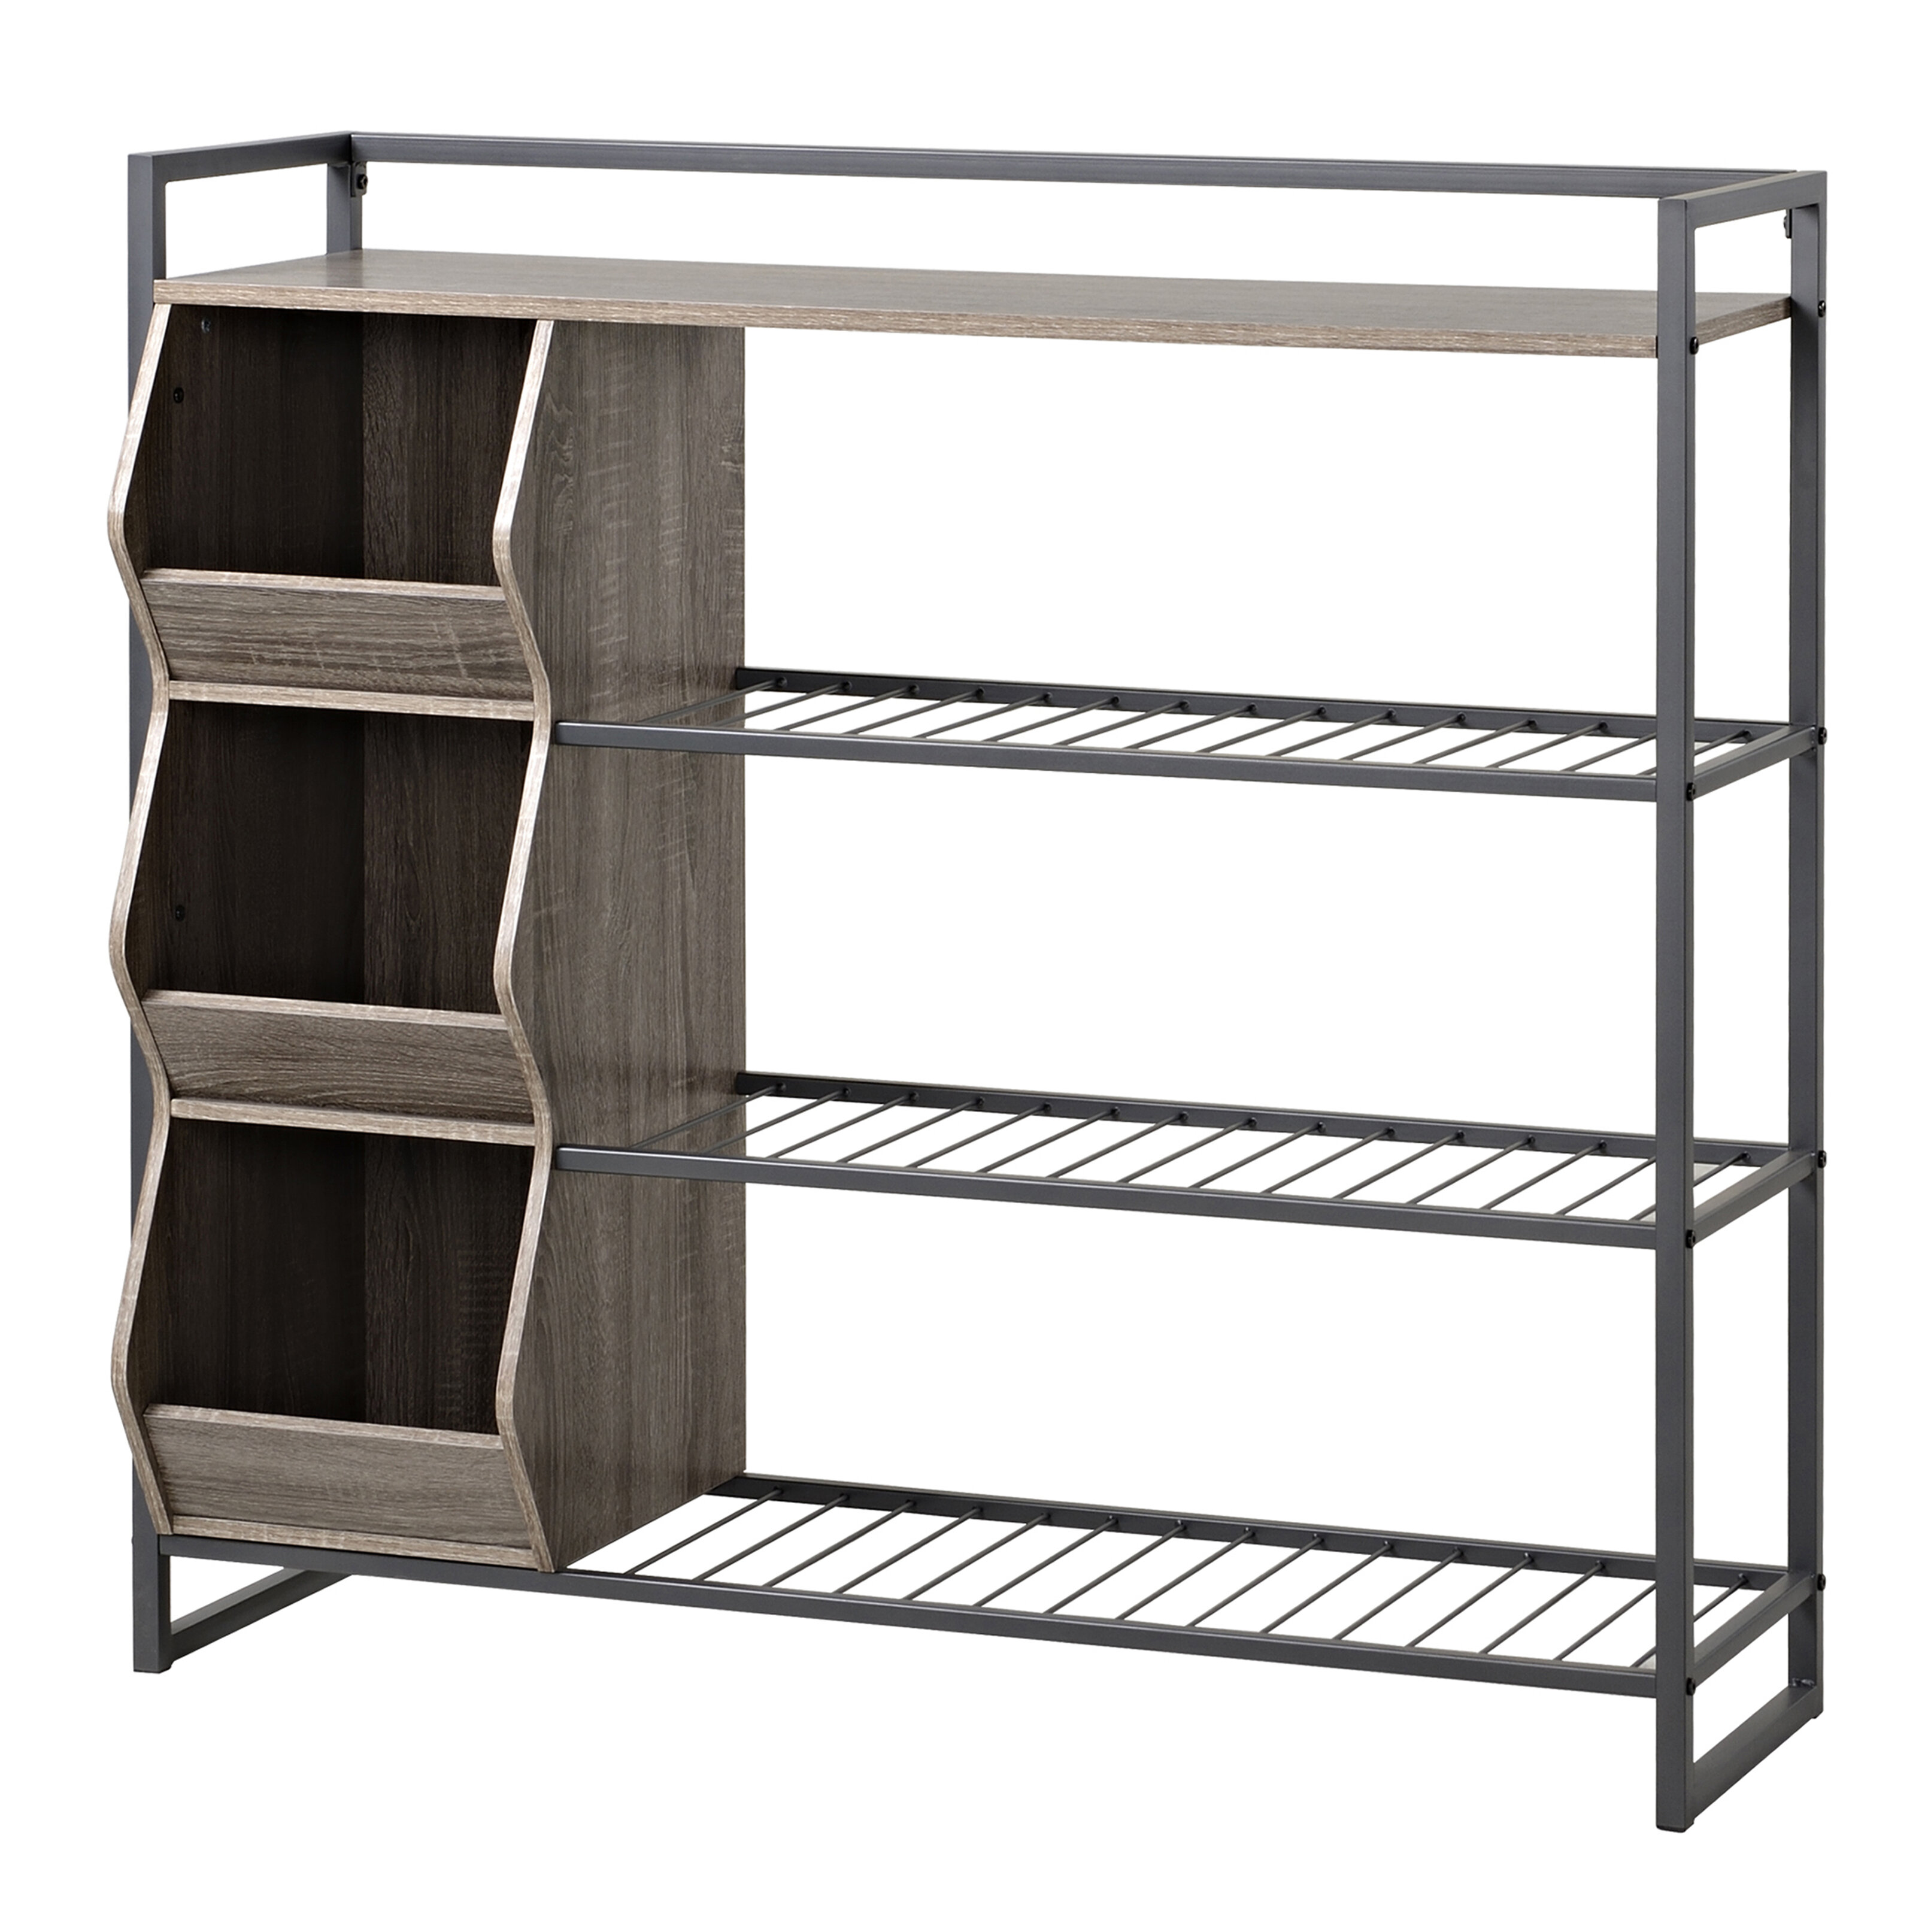 thin storage in stackable bins hooks walmart unforgettable hole baskets seat and narrow entryway mudroom unit pszczelawola info door dresser wide full cubbies hallway back long front with laundry room cheap cushion size benches shoe ikea drawers cubby rack of hearthstone bench white target